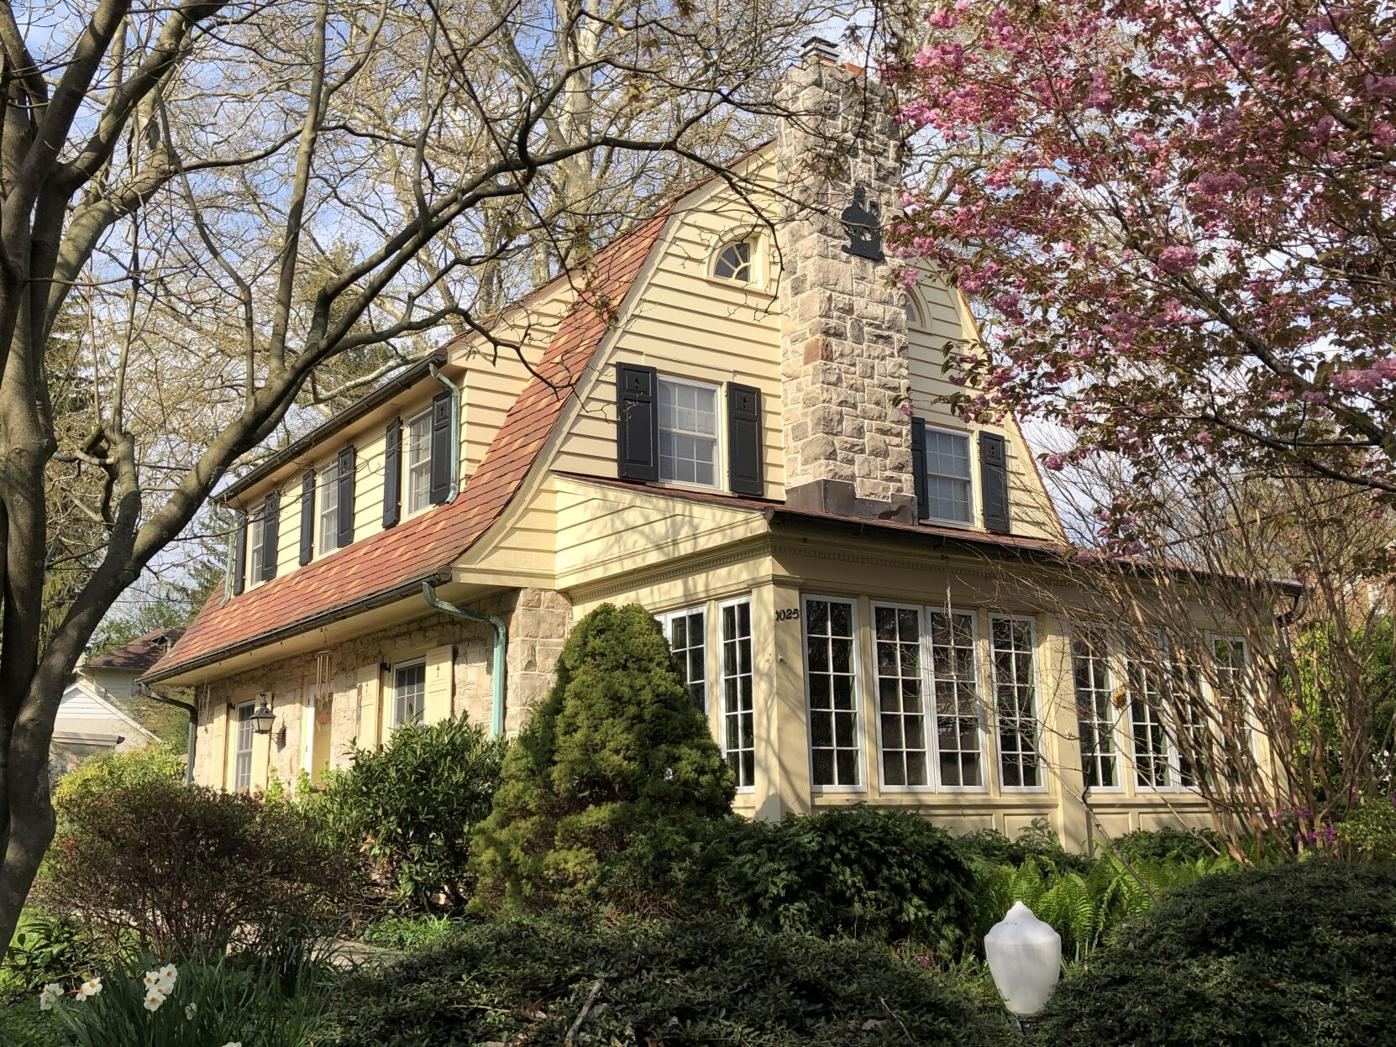 Dutch Colonial Revival with flared eaves